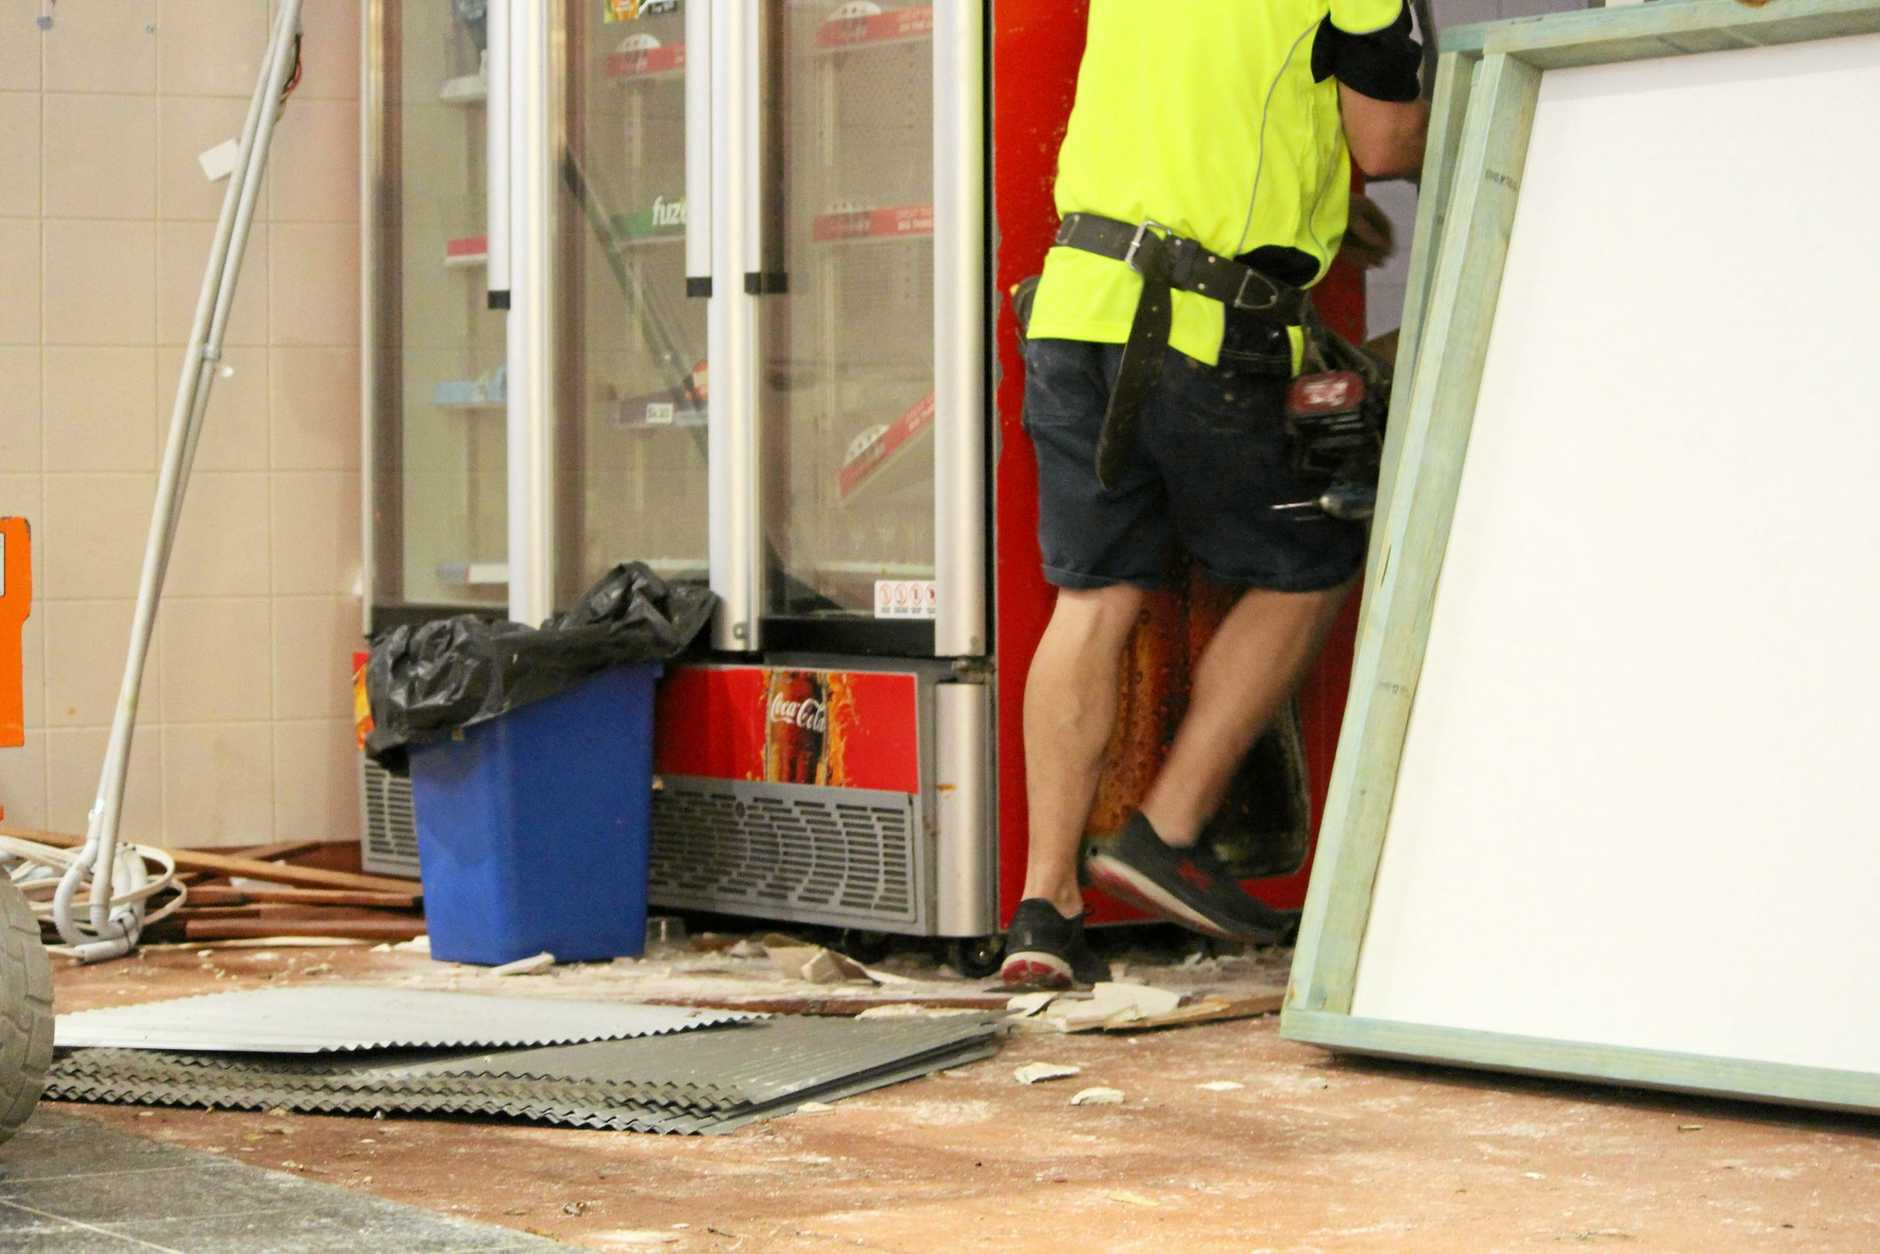 BOARDING UP: Authorised tradesmen cleaning up the carvery the day after it disappeared.